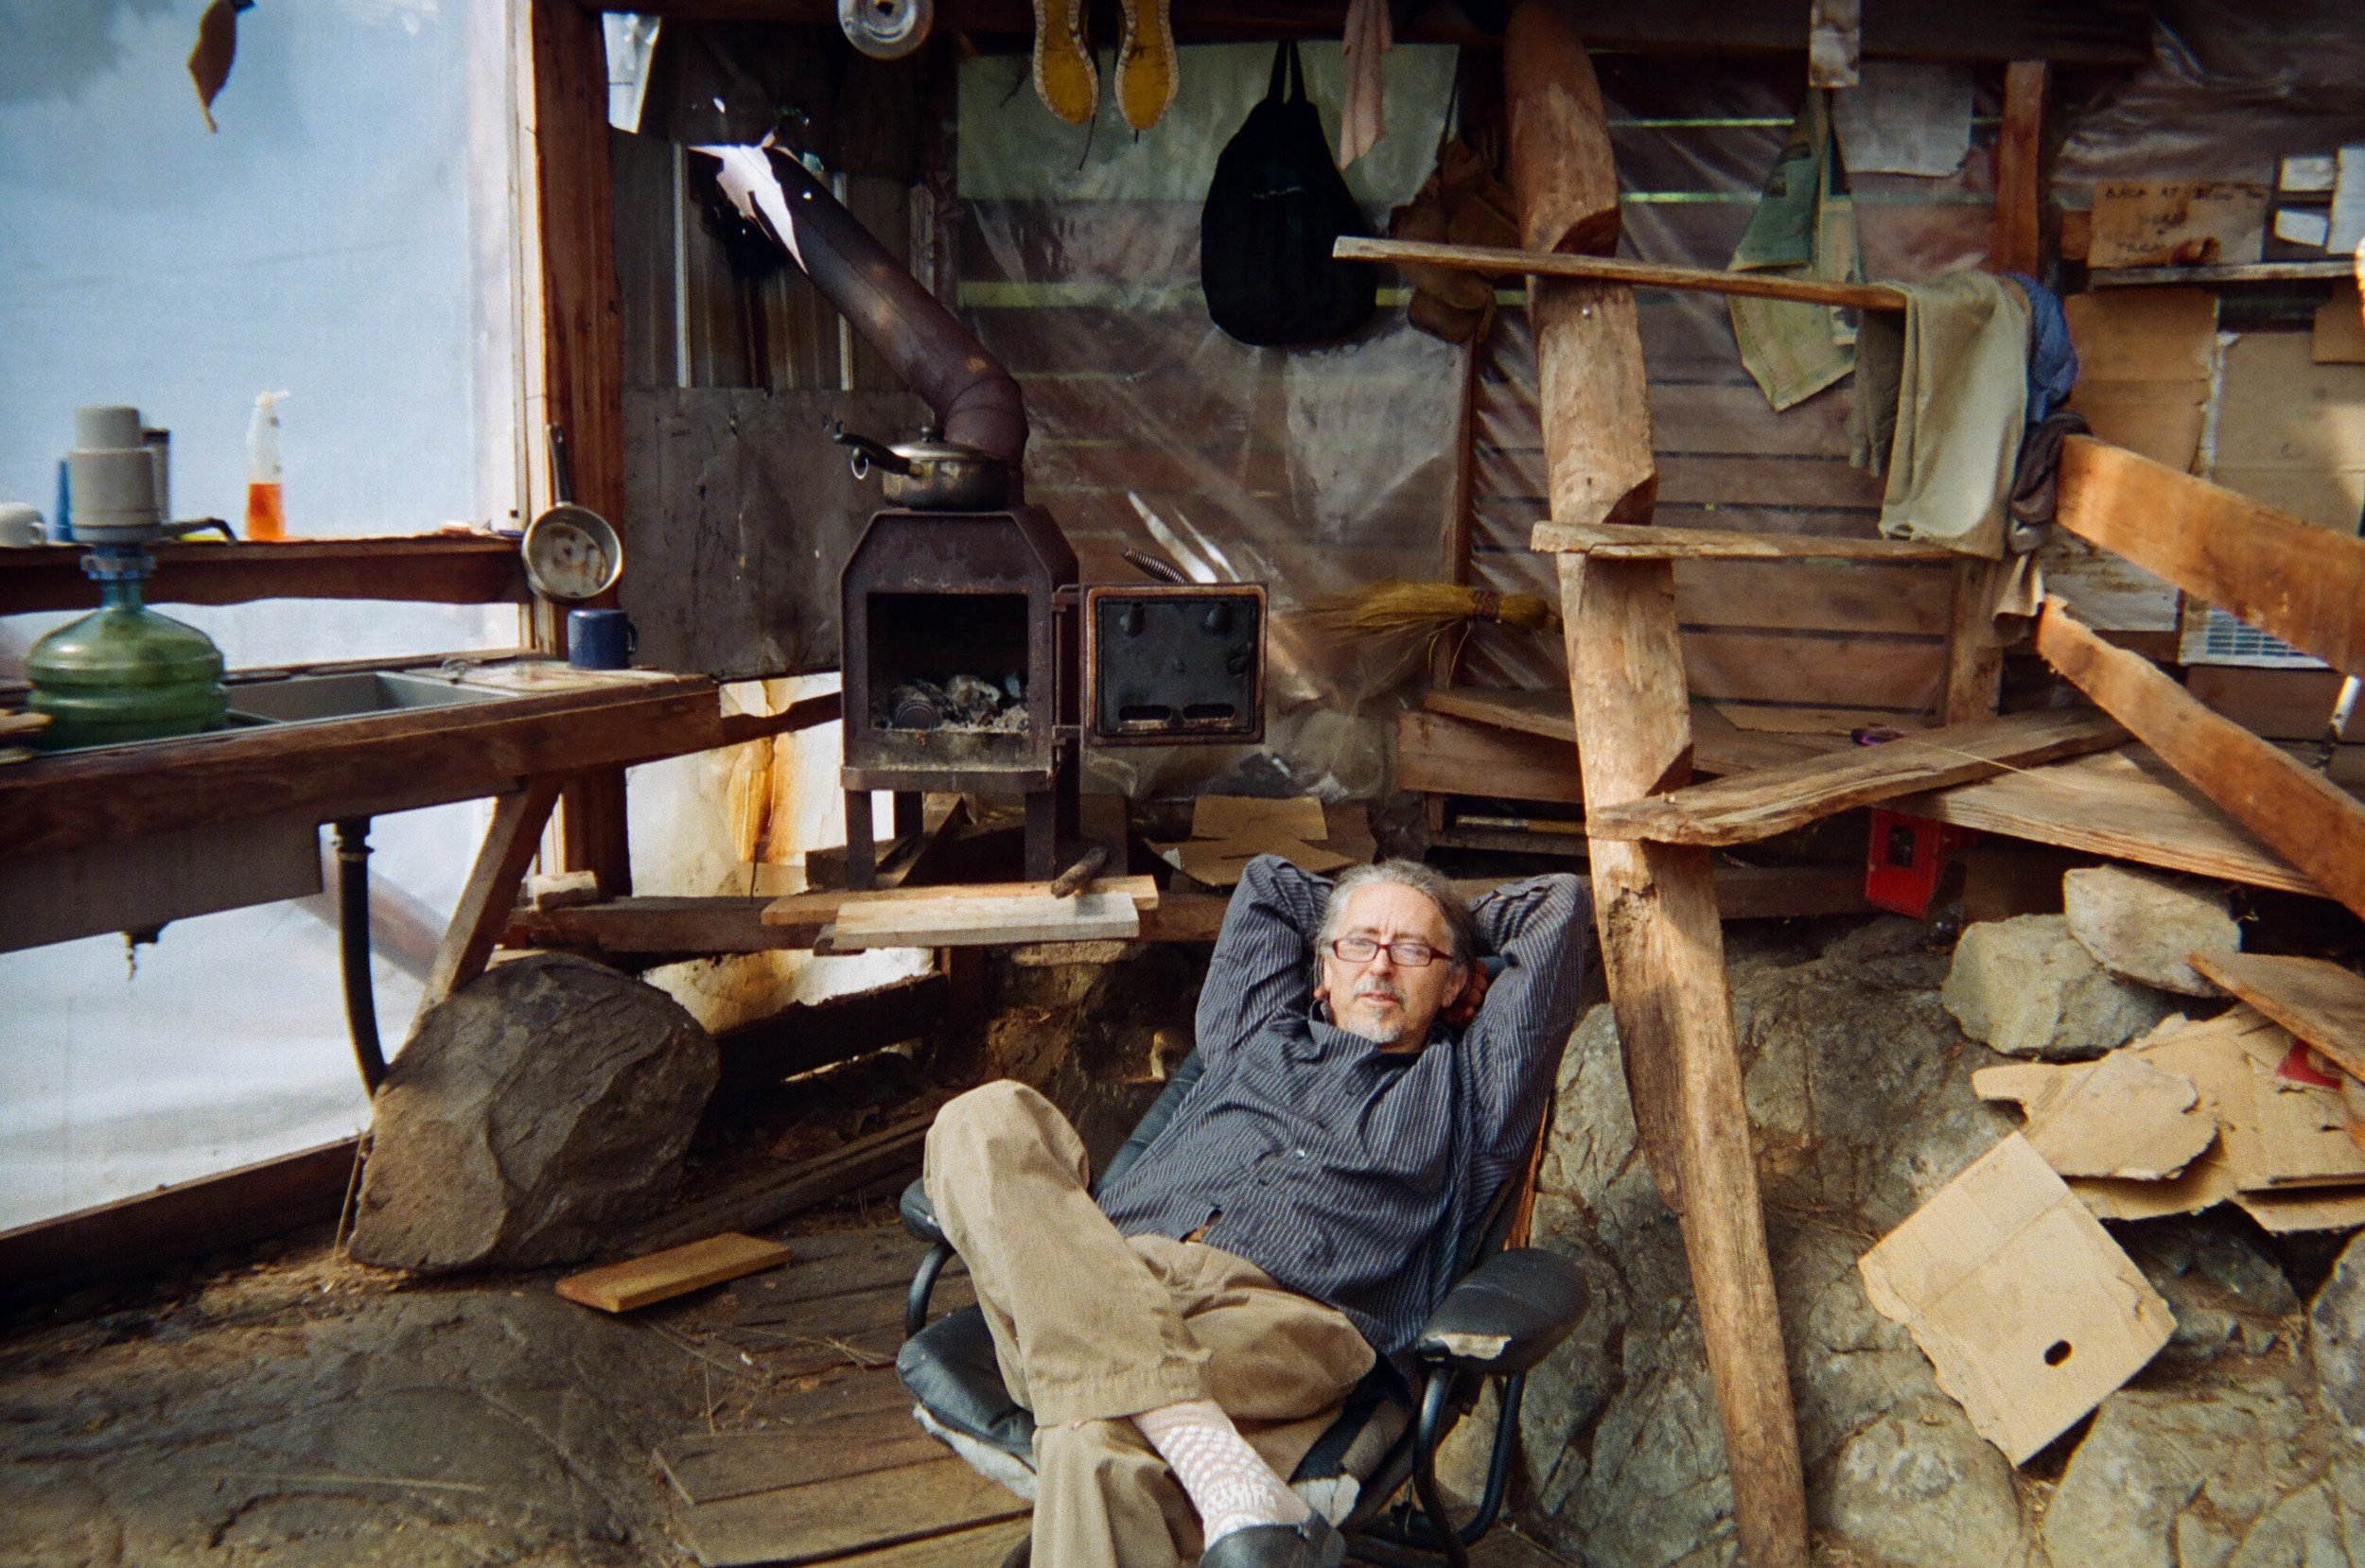 Gerry reclines by the yurt's hearth, enjoying his pace of life.